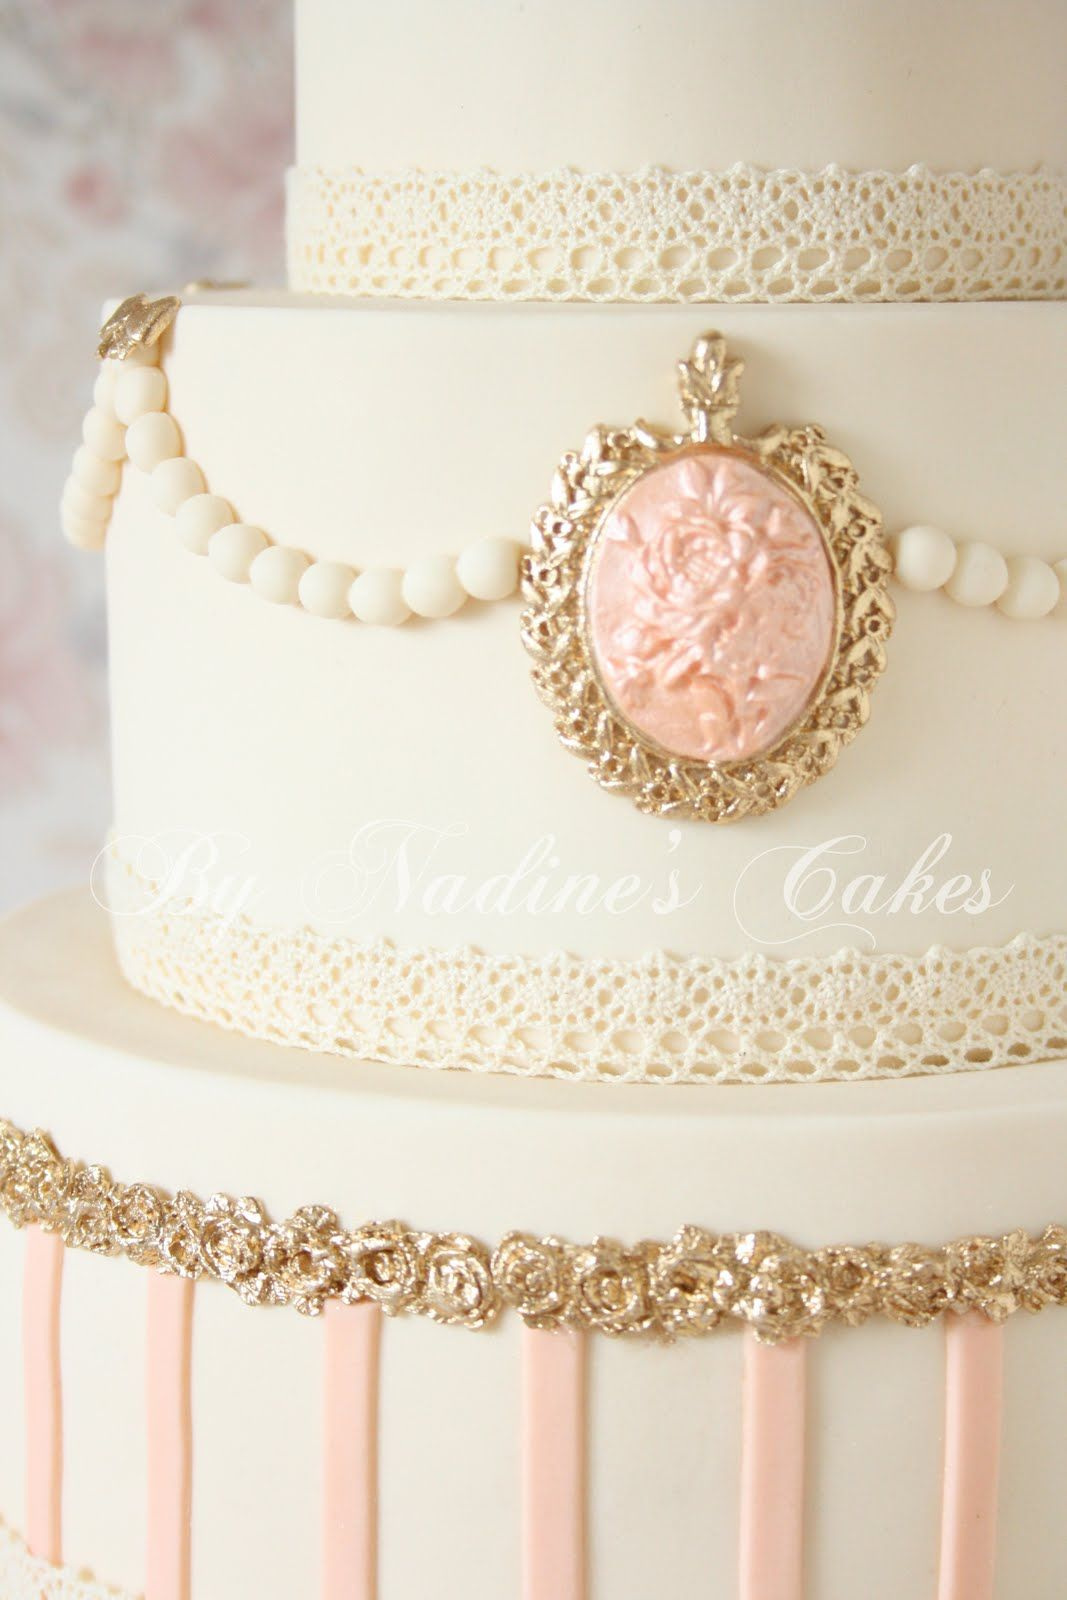 Marie Antoinette shabbychic wedding cake - I love this cake ...